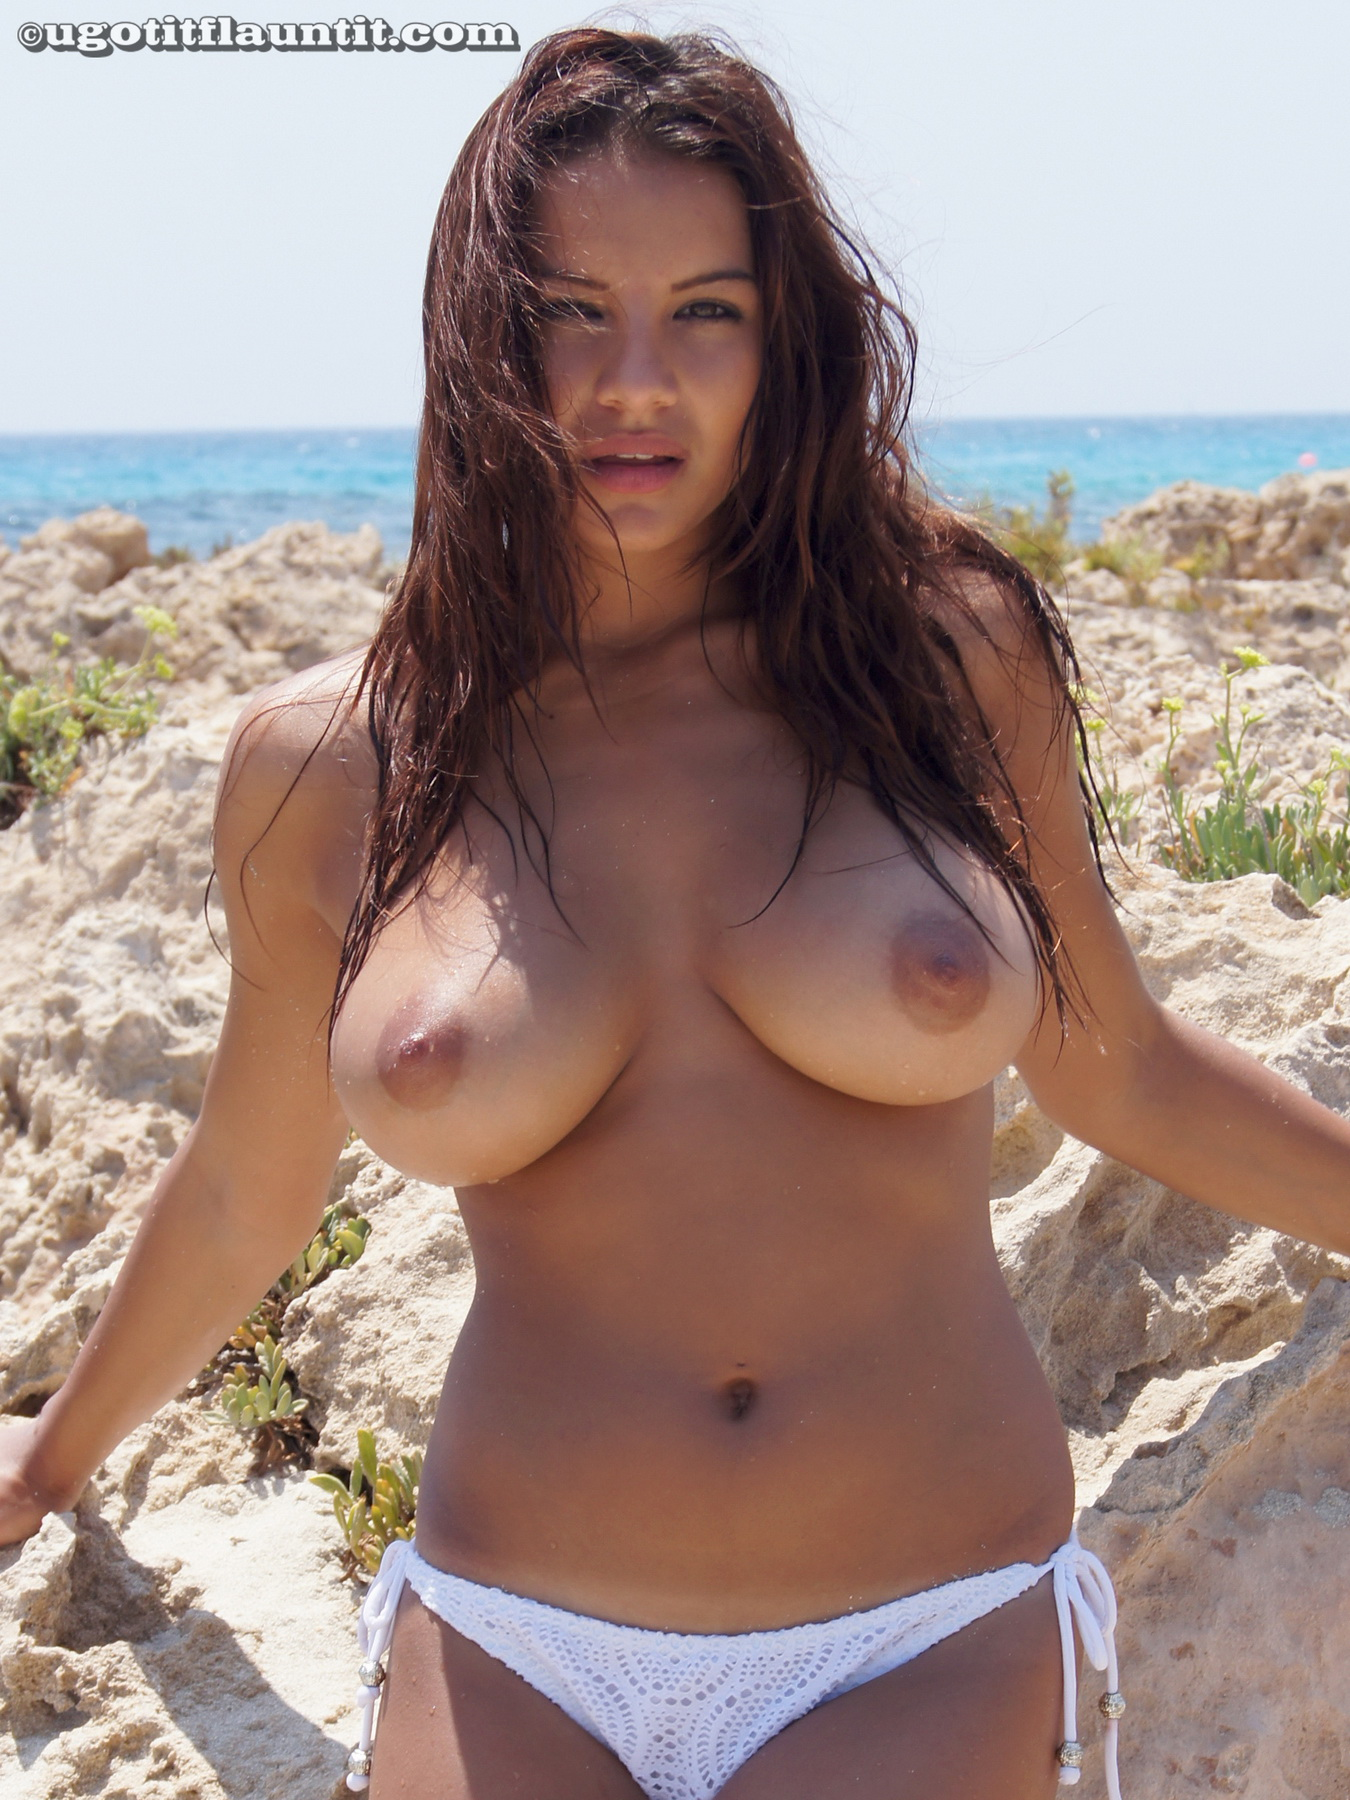 Big Boobs On Sexy Topless Amateur Beach Babe  Nude -1826